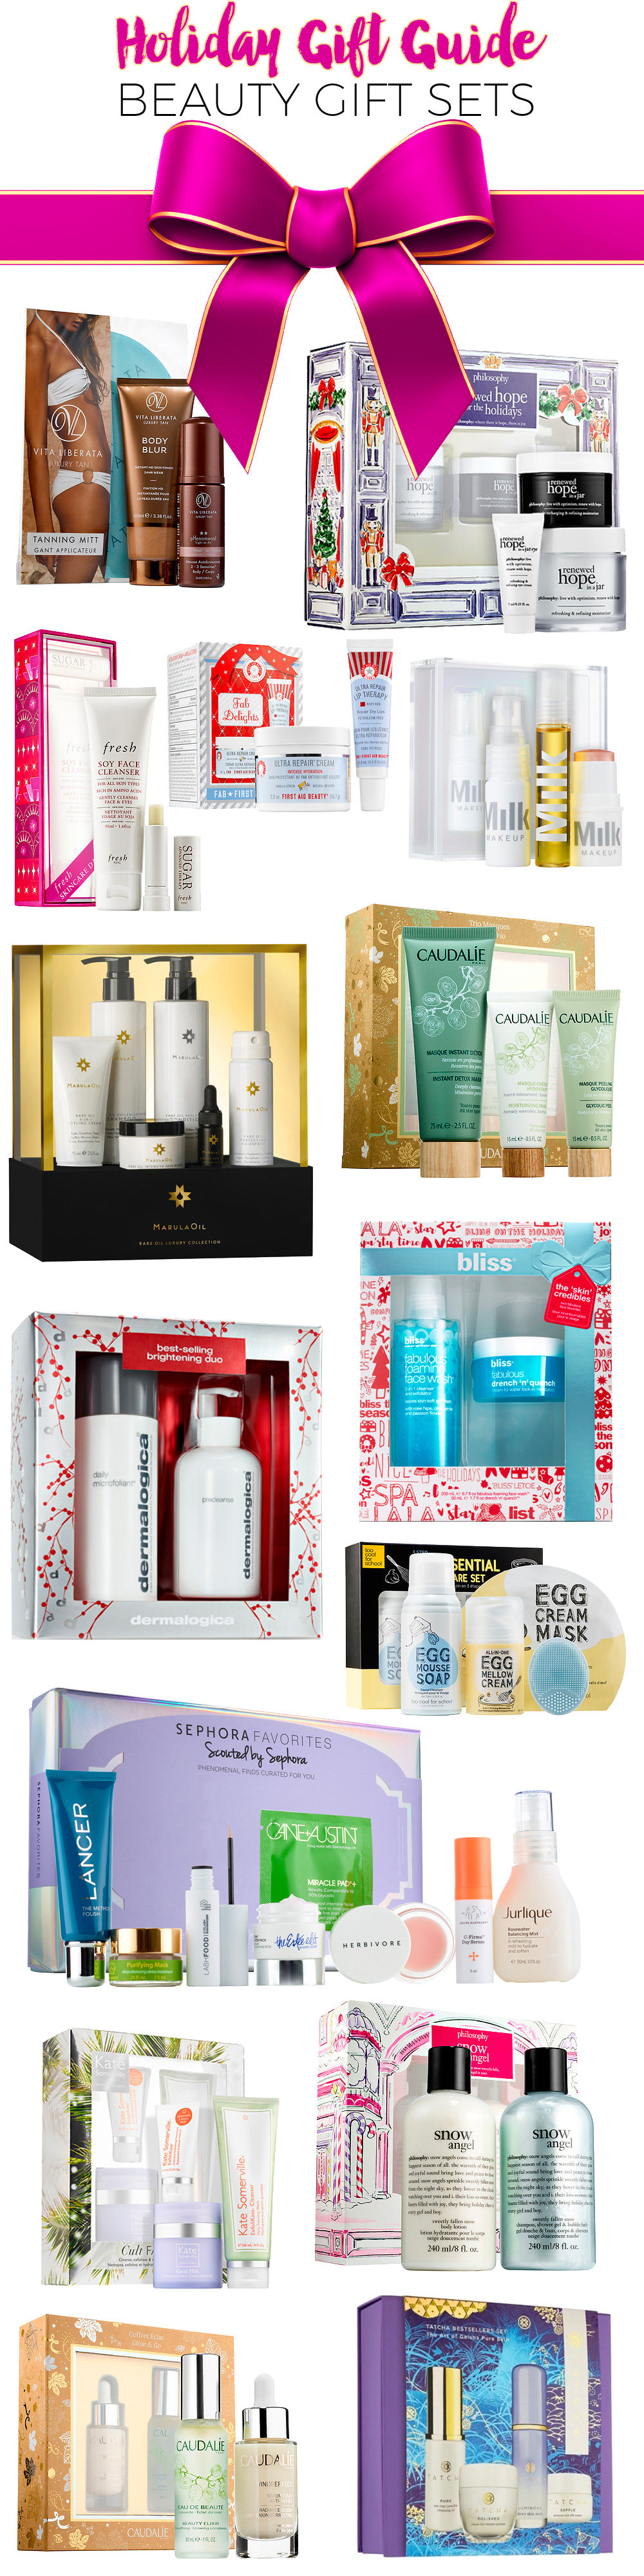 Holiday Gift Guide 2016: Best Beauty Gift Sets